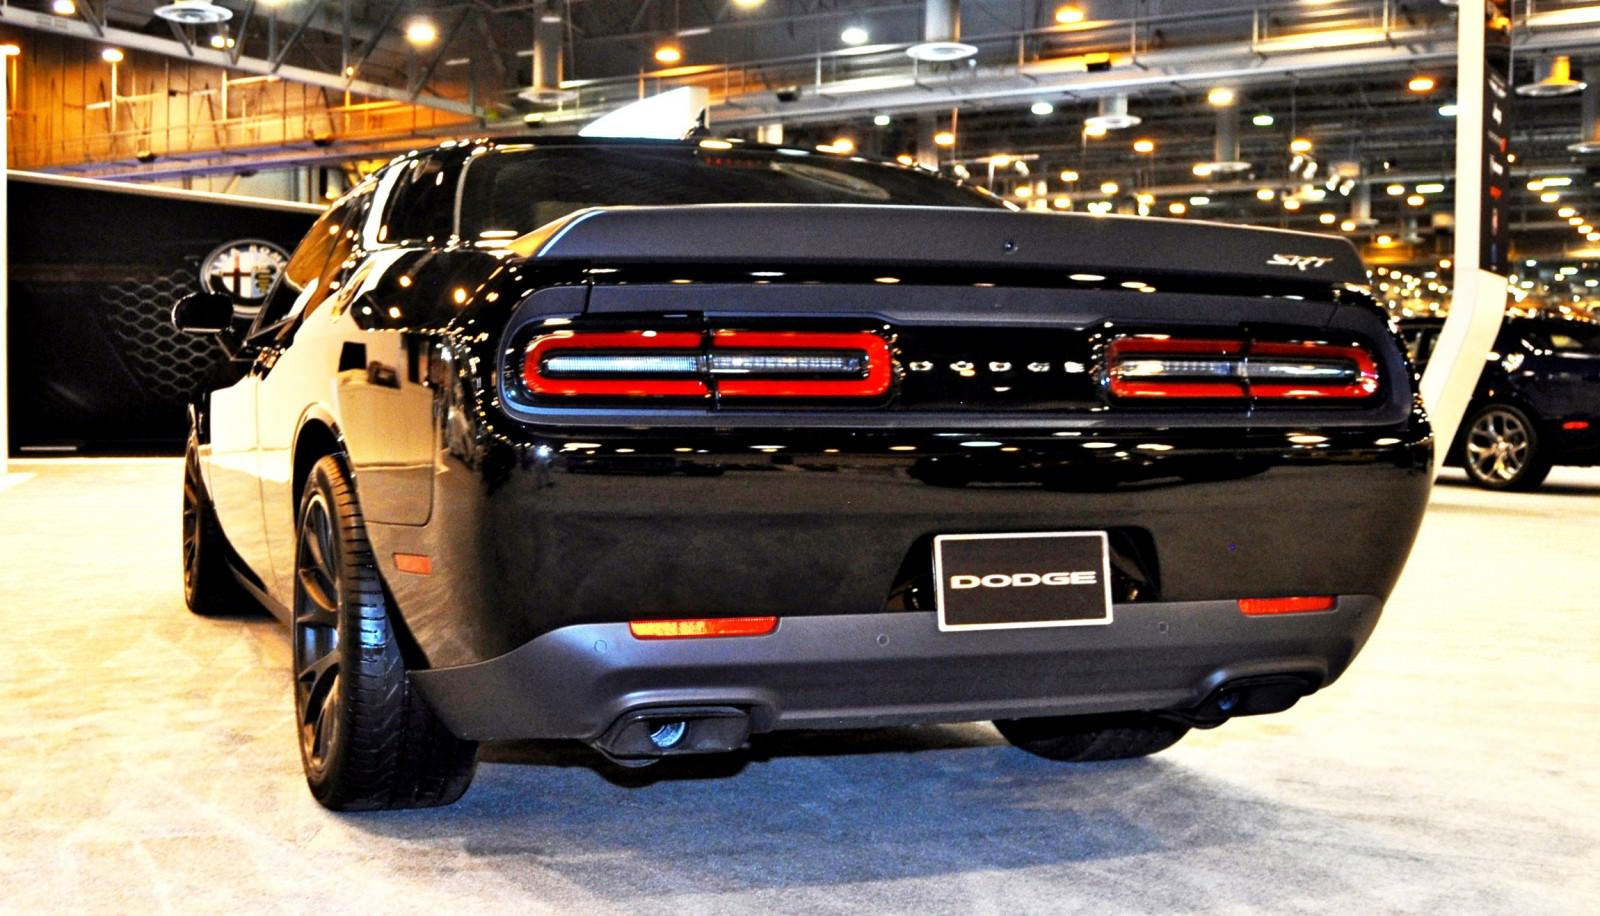 What Does Rt Stand For Dodge >> 2015 Dodge Challenger SRT